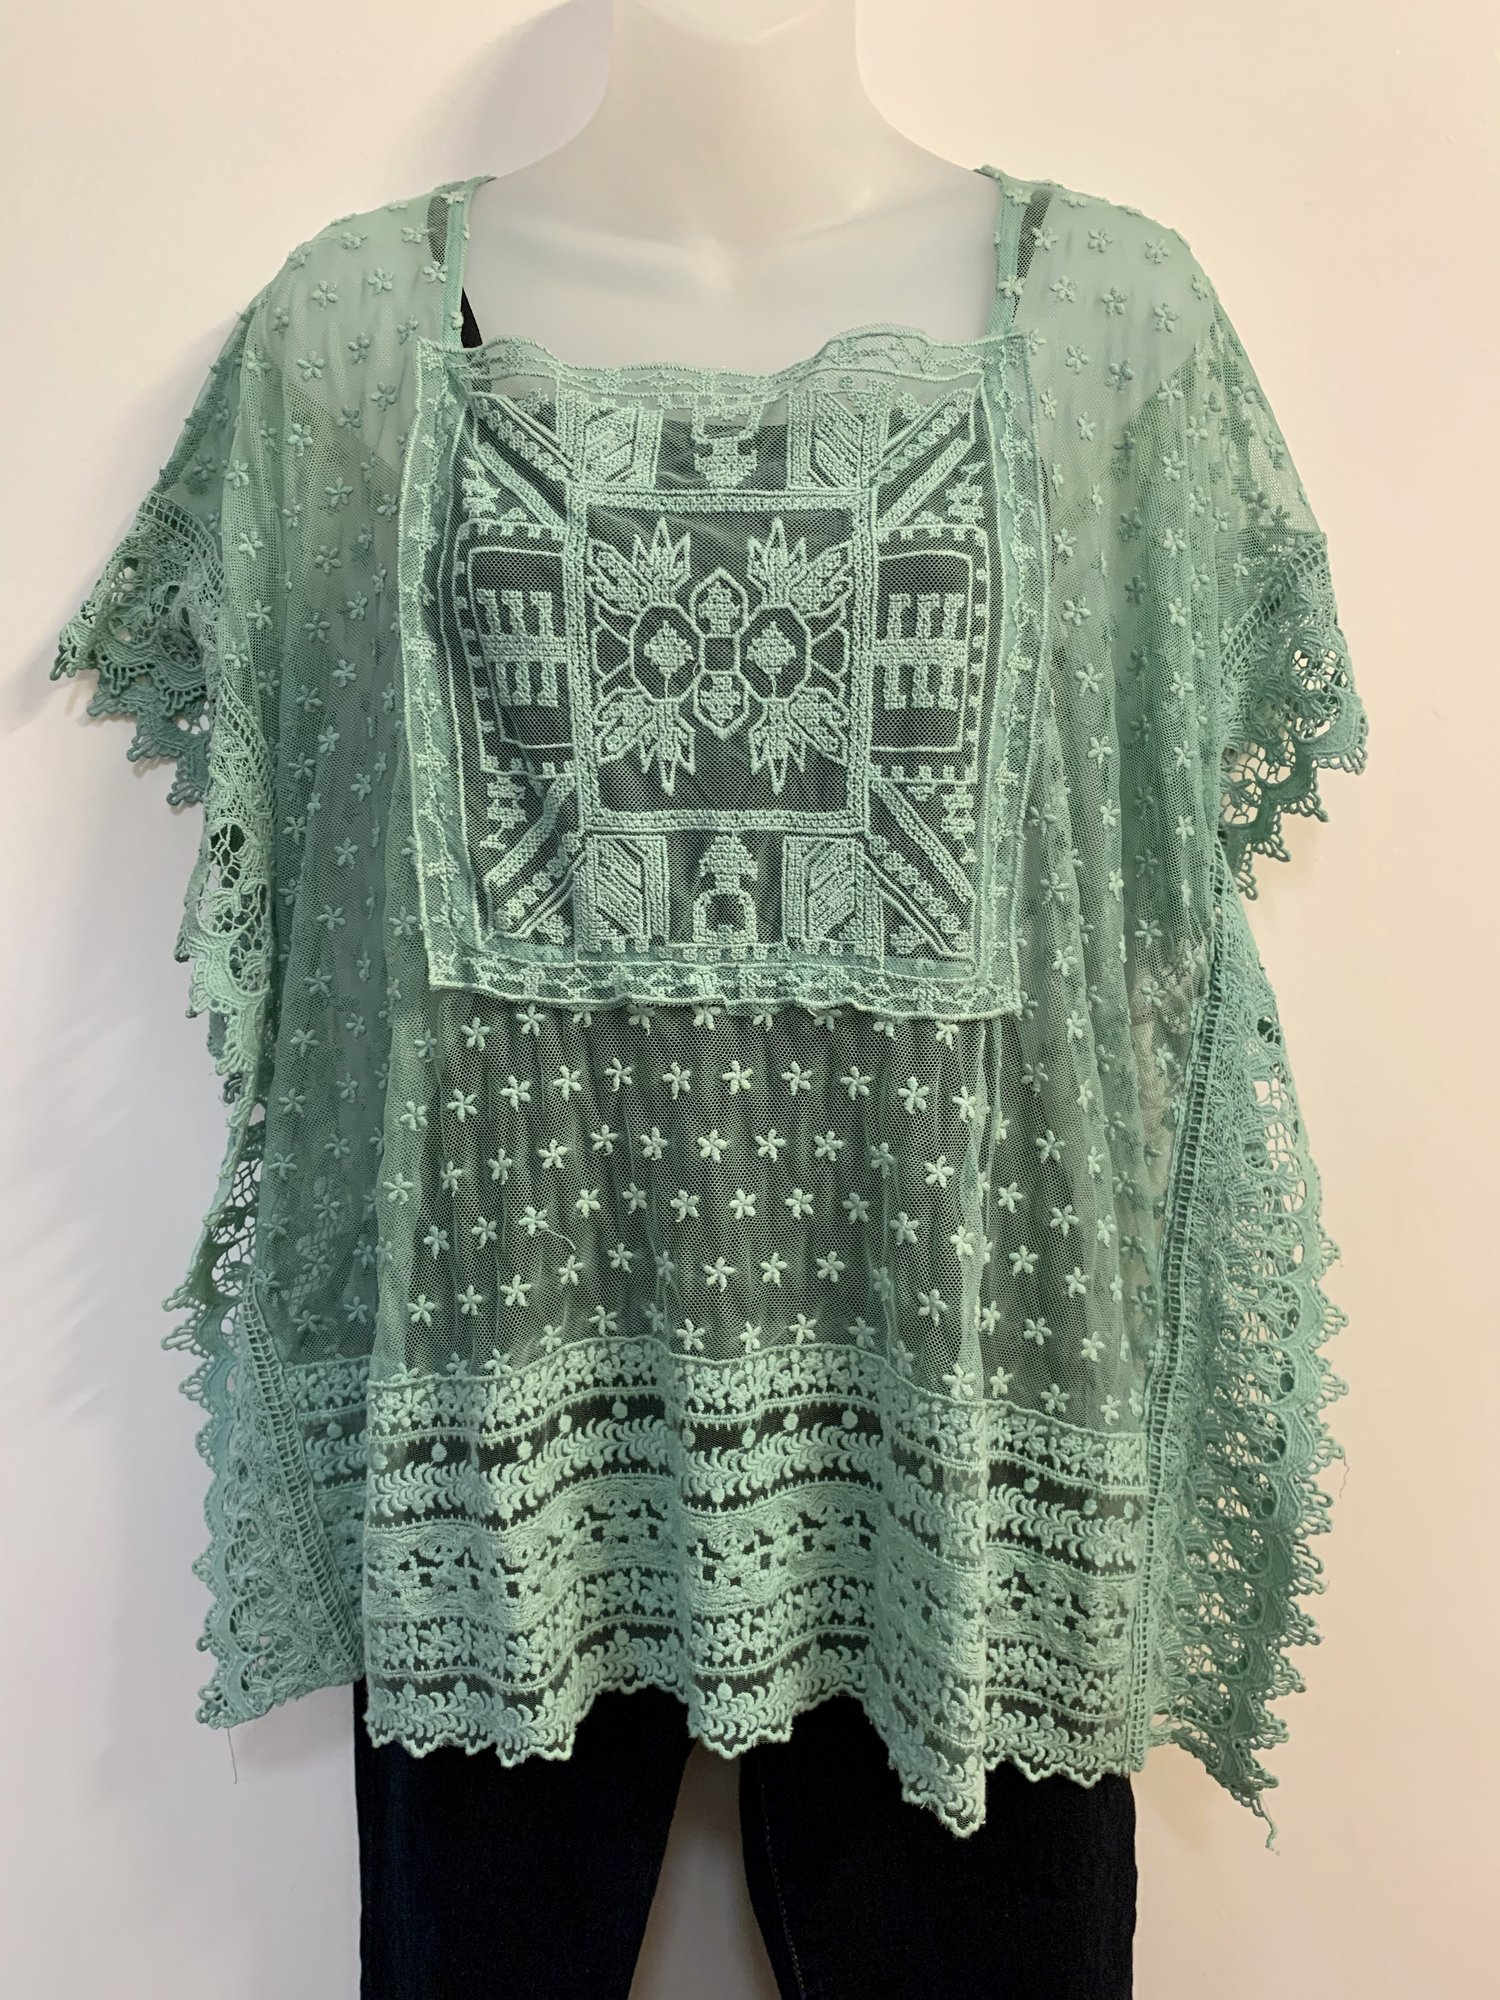 Sundance Lace Top<br /> Seagreen, Size: Medium